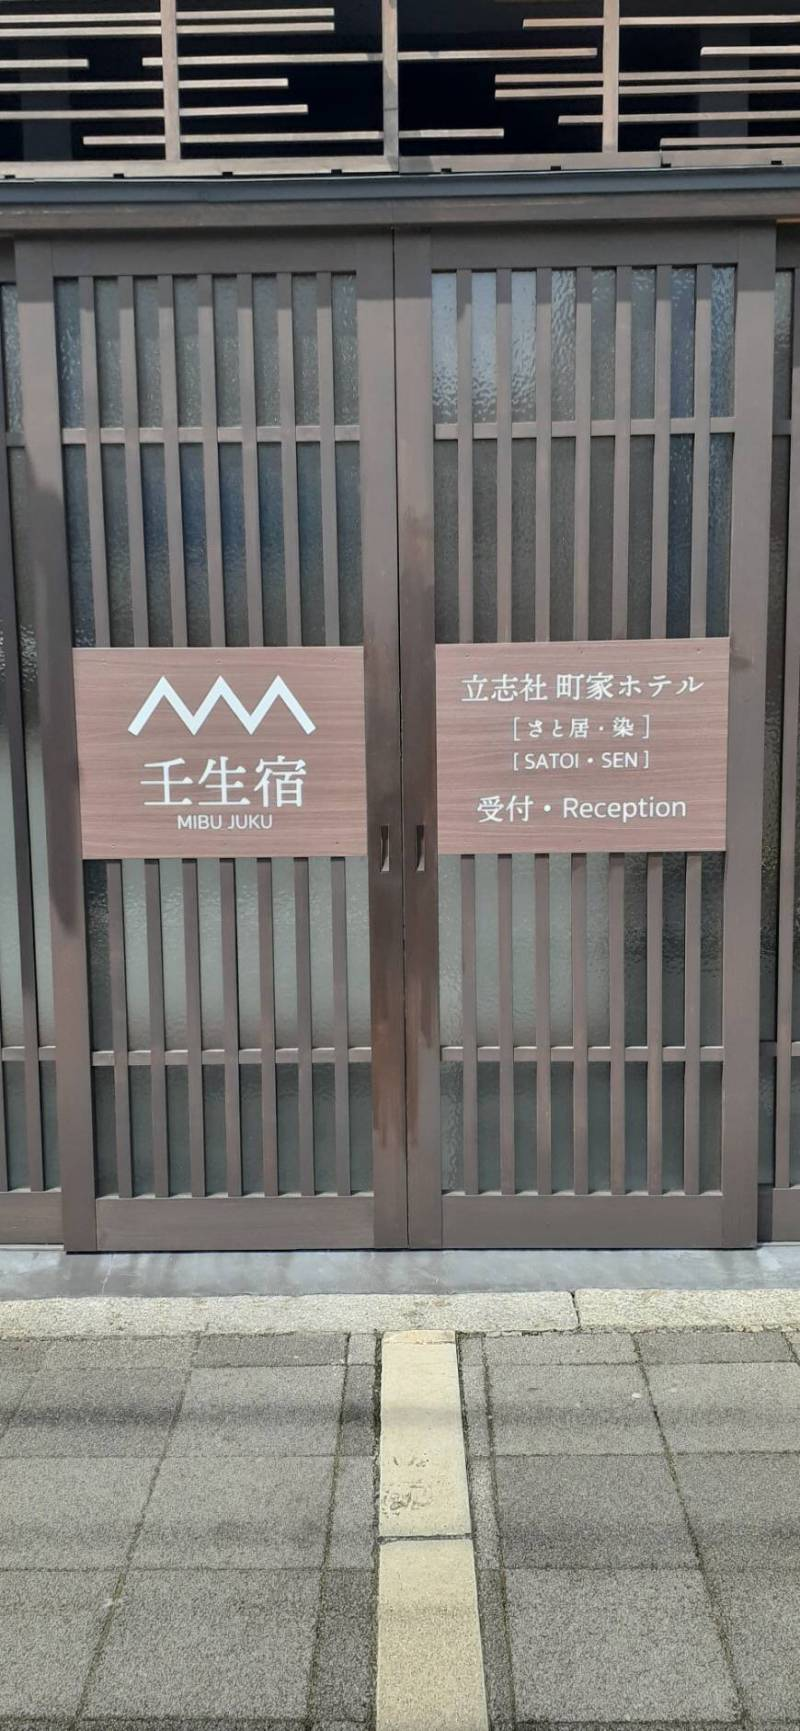 MIBU-JUKU's Signboard has been renewed!!!